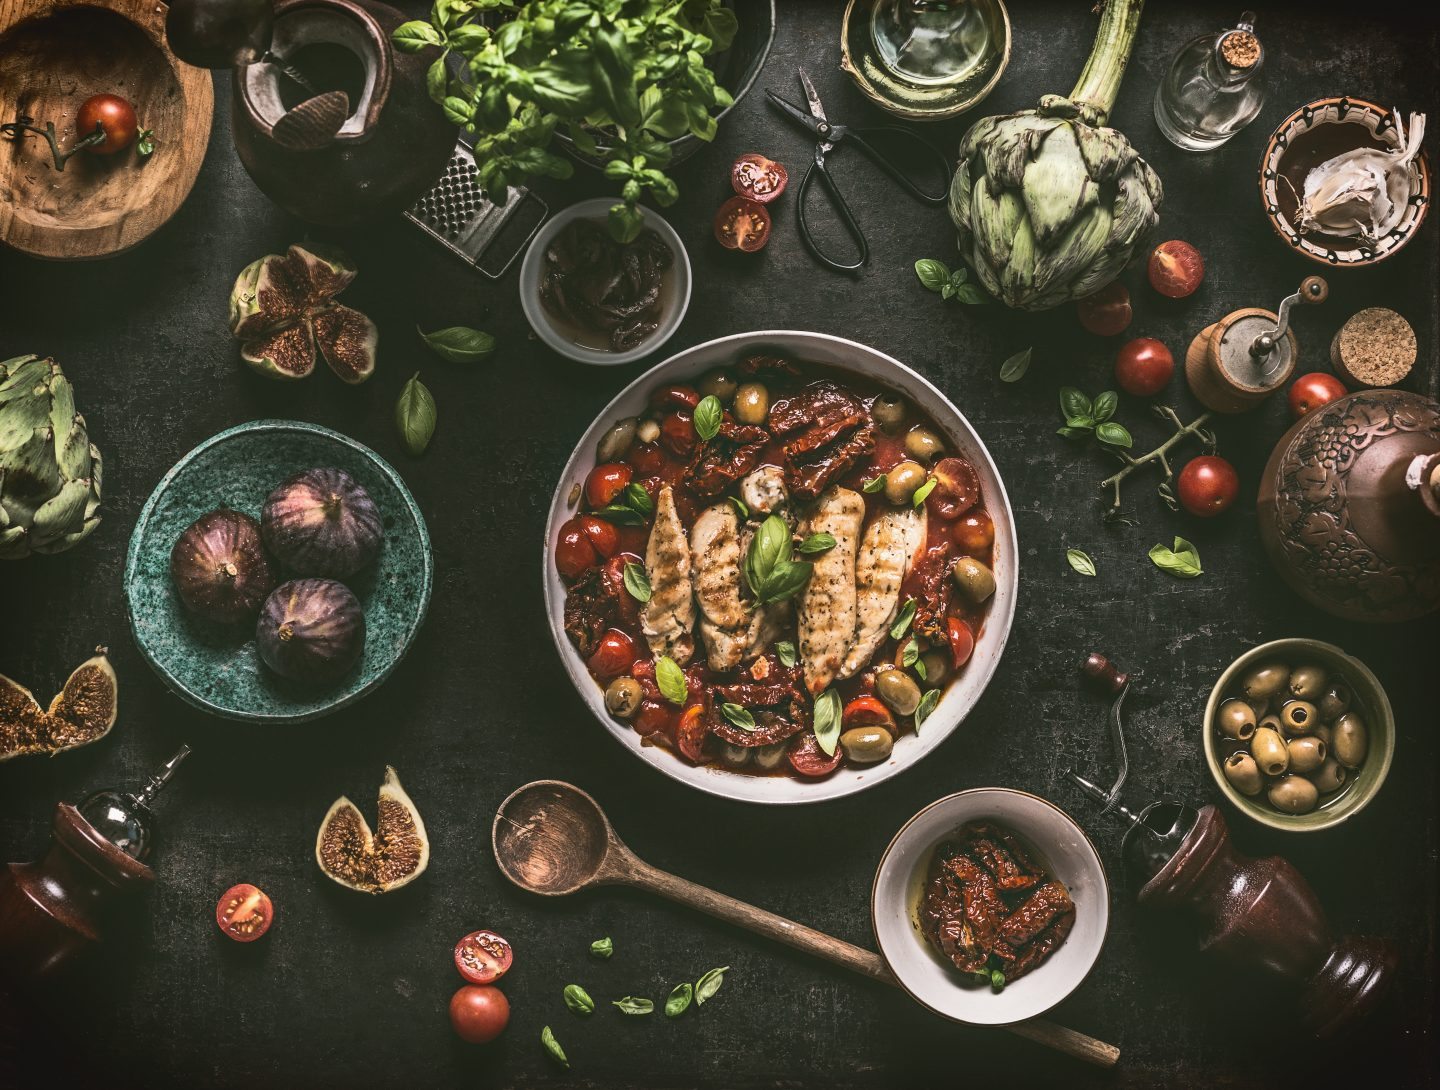 Grilled chicken breast with Mediterranean sauce in cooking pan and ingredients: tomatoes, artichokes, olives, sun-dried tomatoes,figs, anchovies, fresh seasoning herbs and spices on dark rustic table with vintage kitchen utensils , top view.